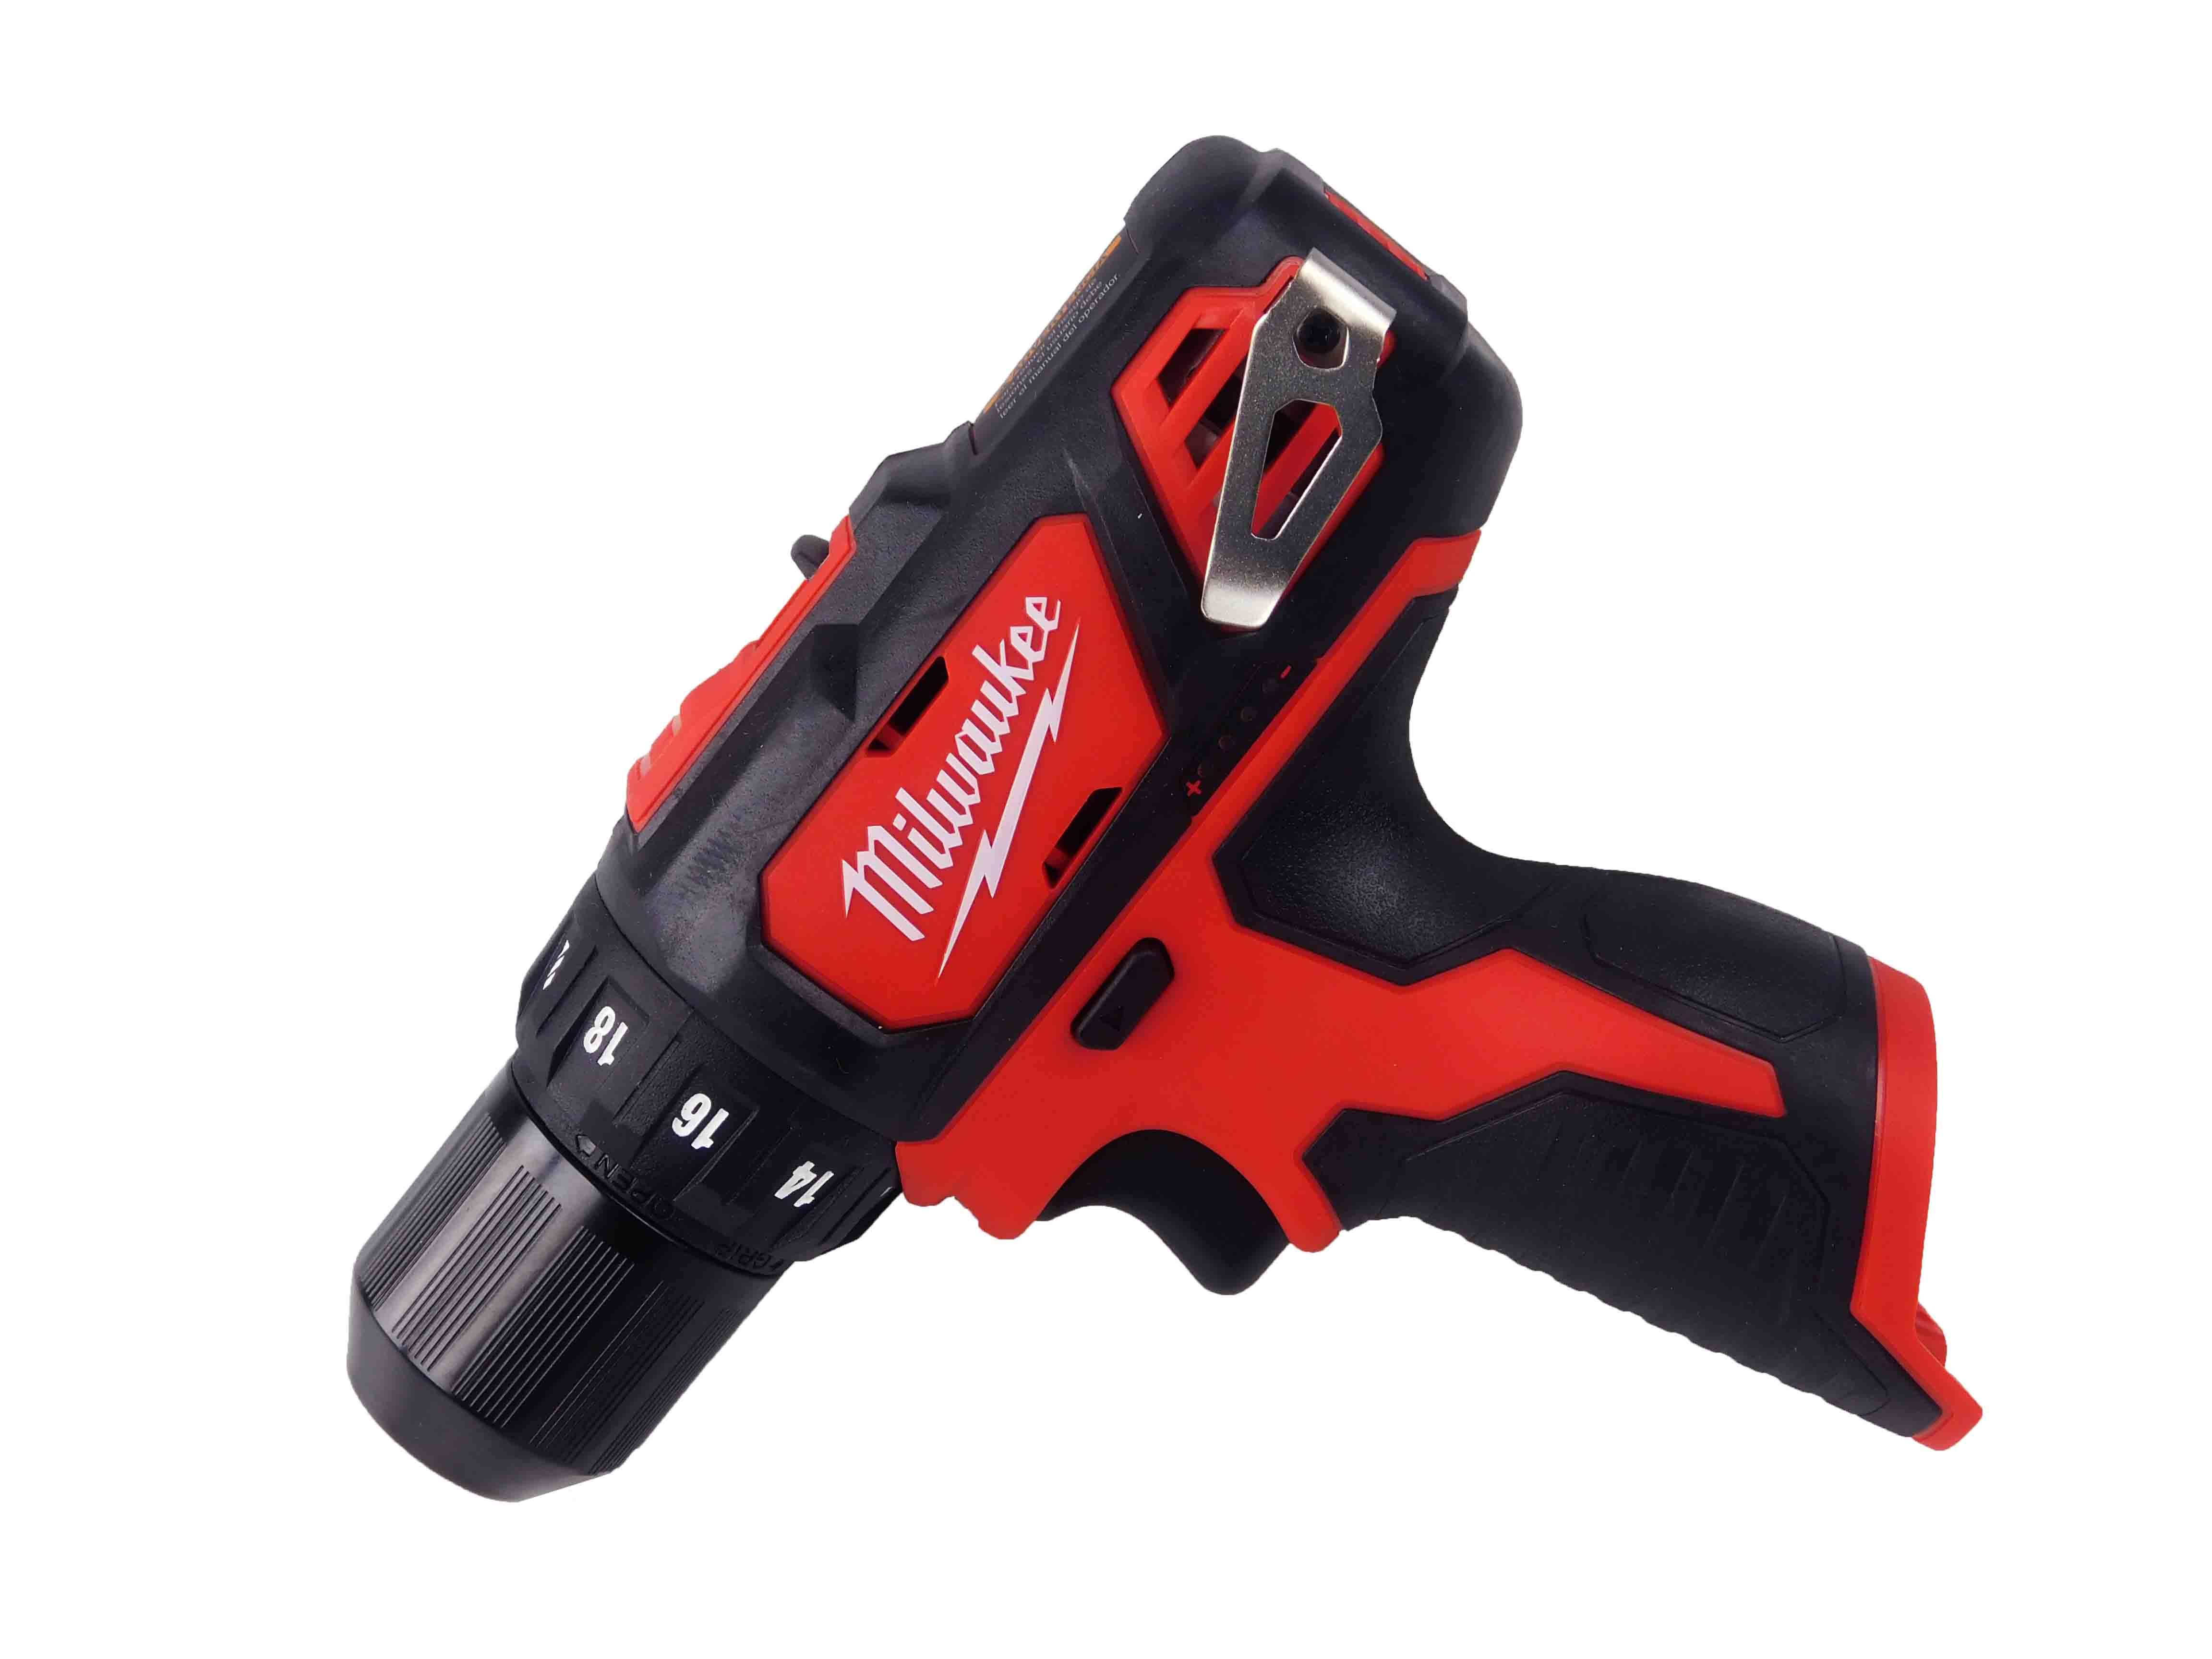 Milwaukee-2407-20-12V-M12-3-8inch-Chuck-Drill-Driver-2-Speed-image-2